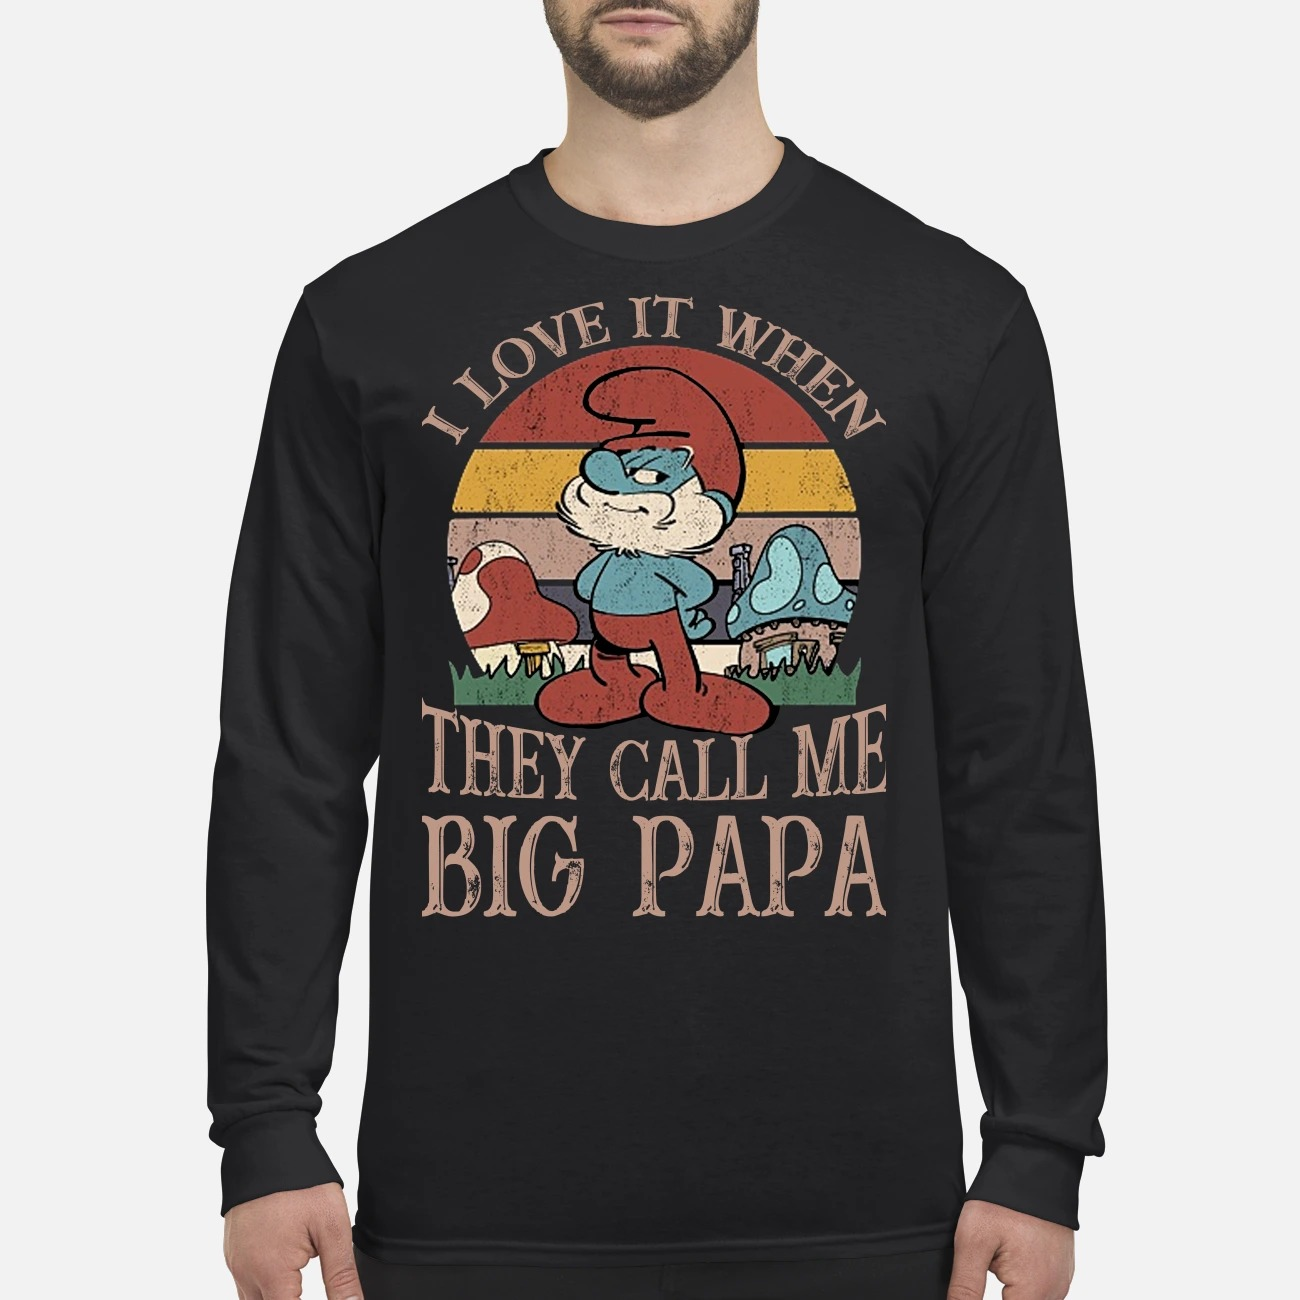 Smurf I love it when they call me big papa men's long sleeved shirt